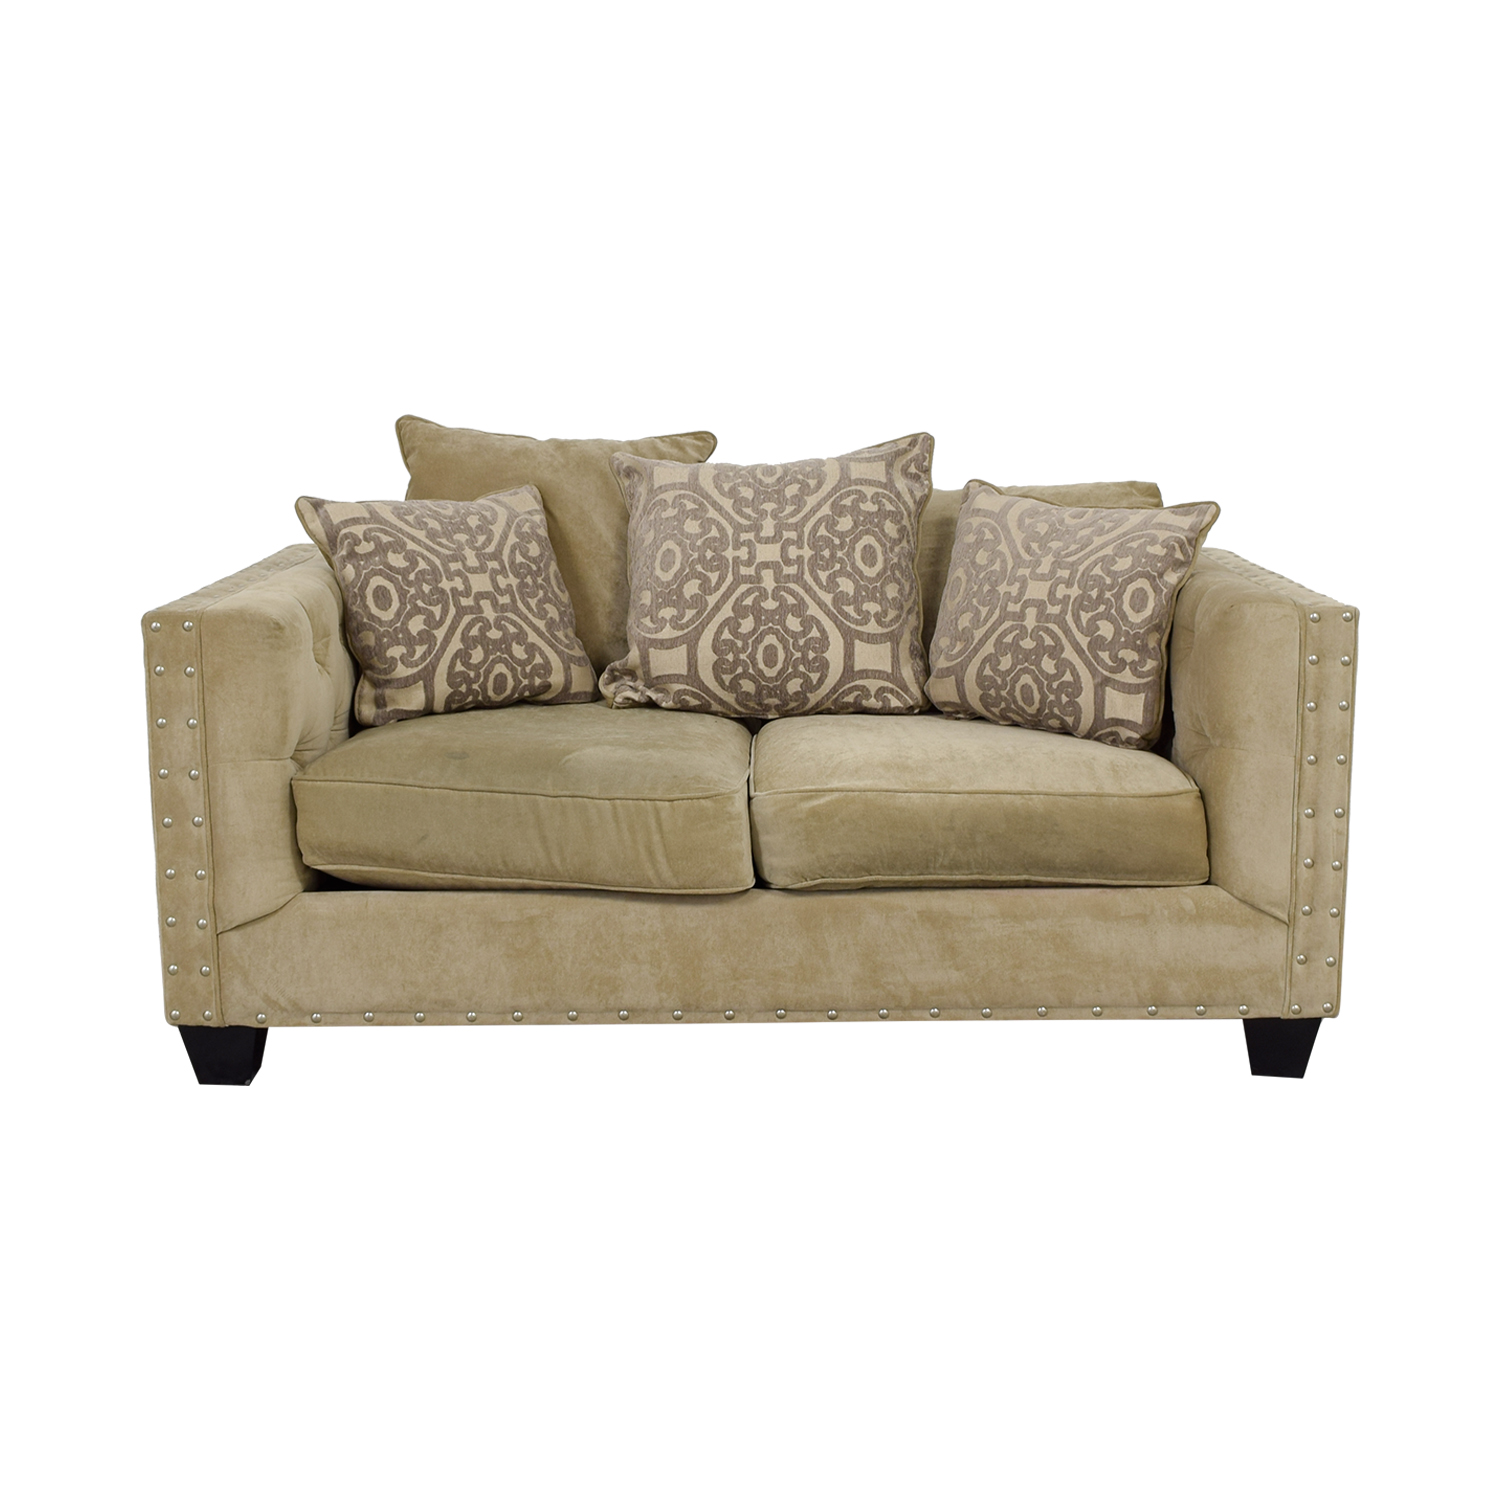 buy Raymour & Flanigan Cindy Crawford Beige Suede Loveseat Raymour & Flanigan Loveseats